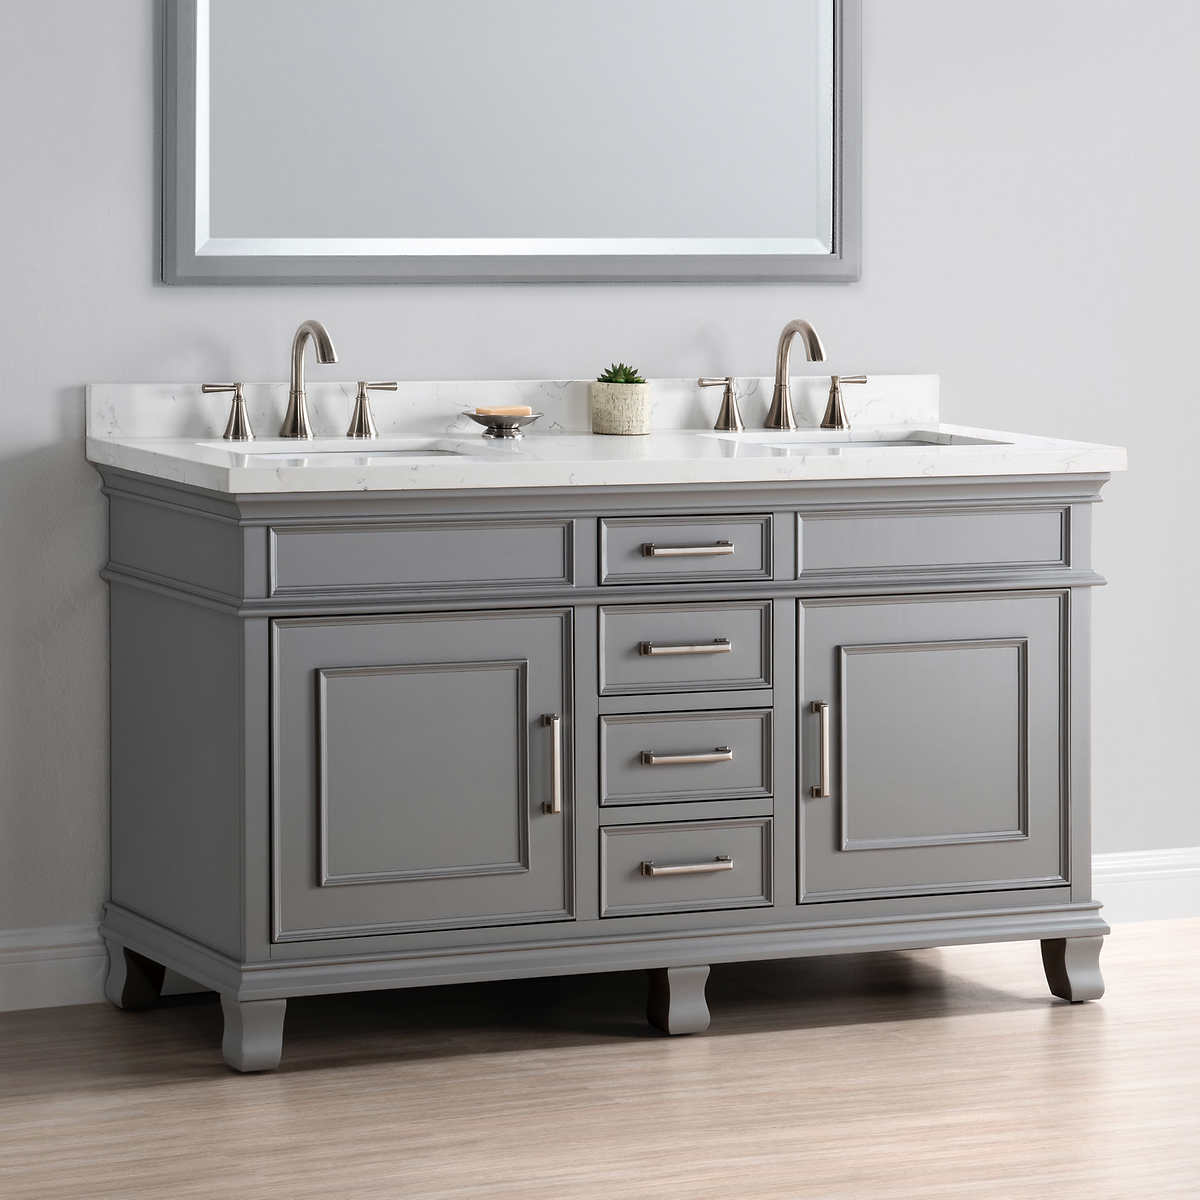 "Bathroom Vanity Gray charleston 60"" gray double sink vanitymission hills"